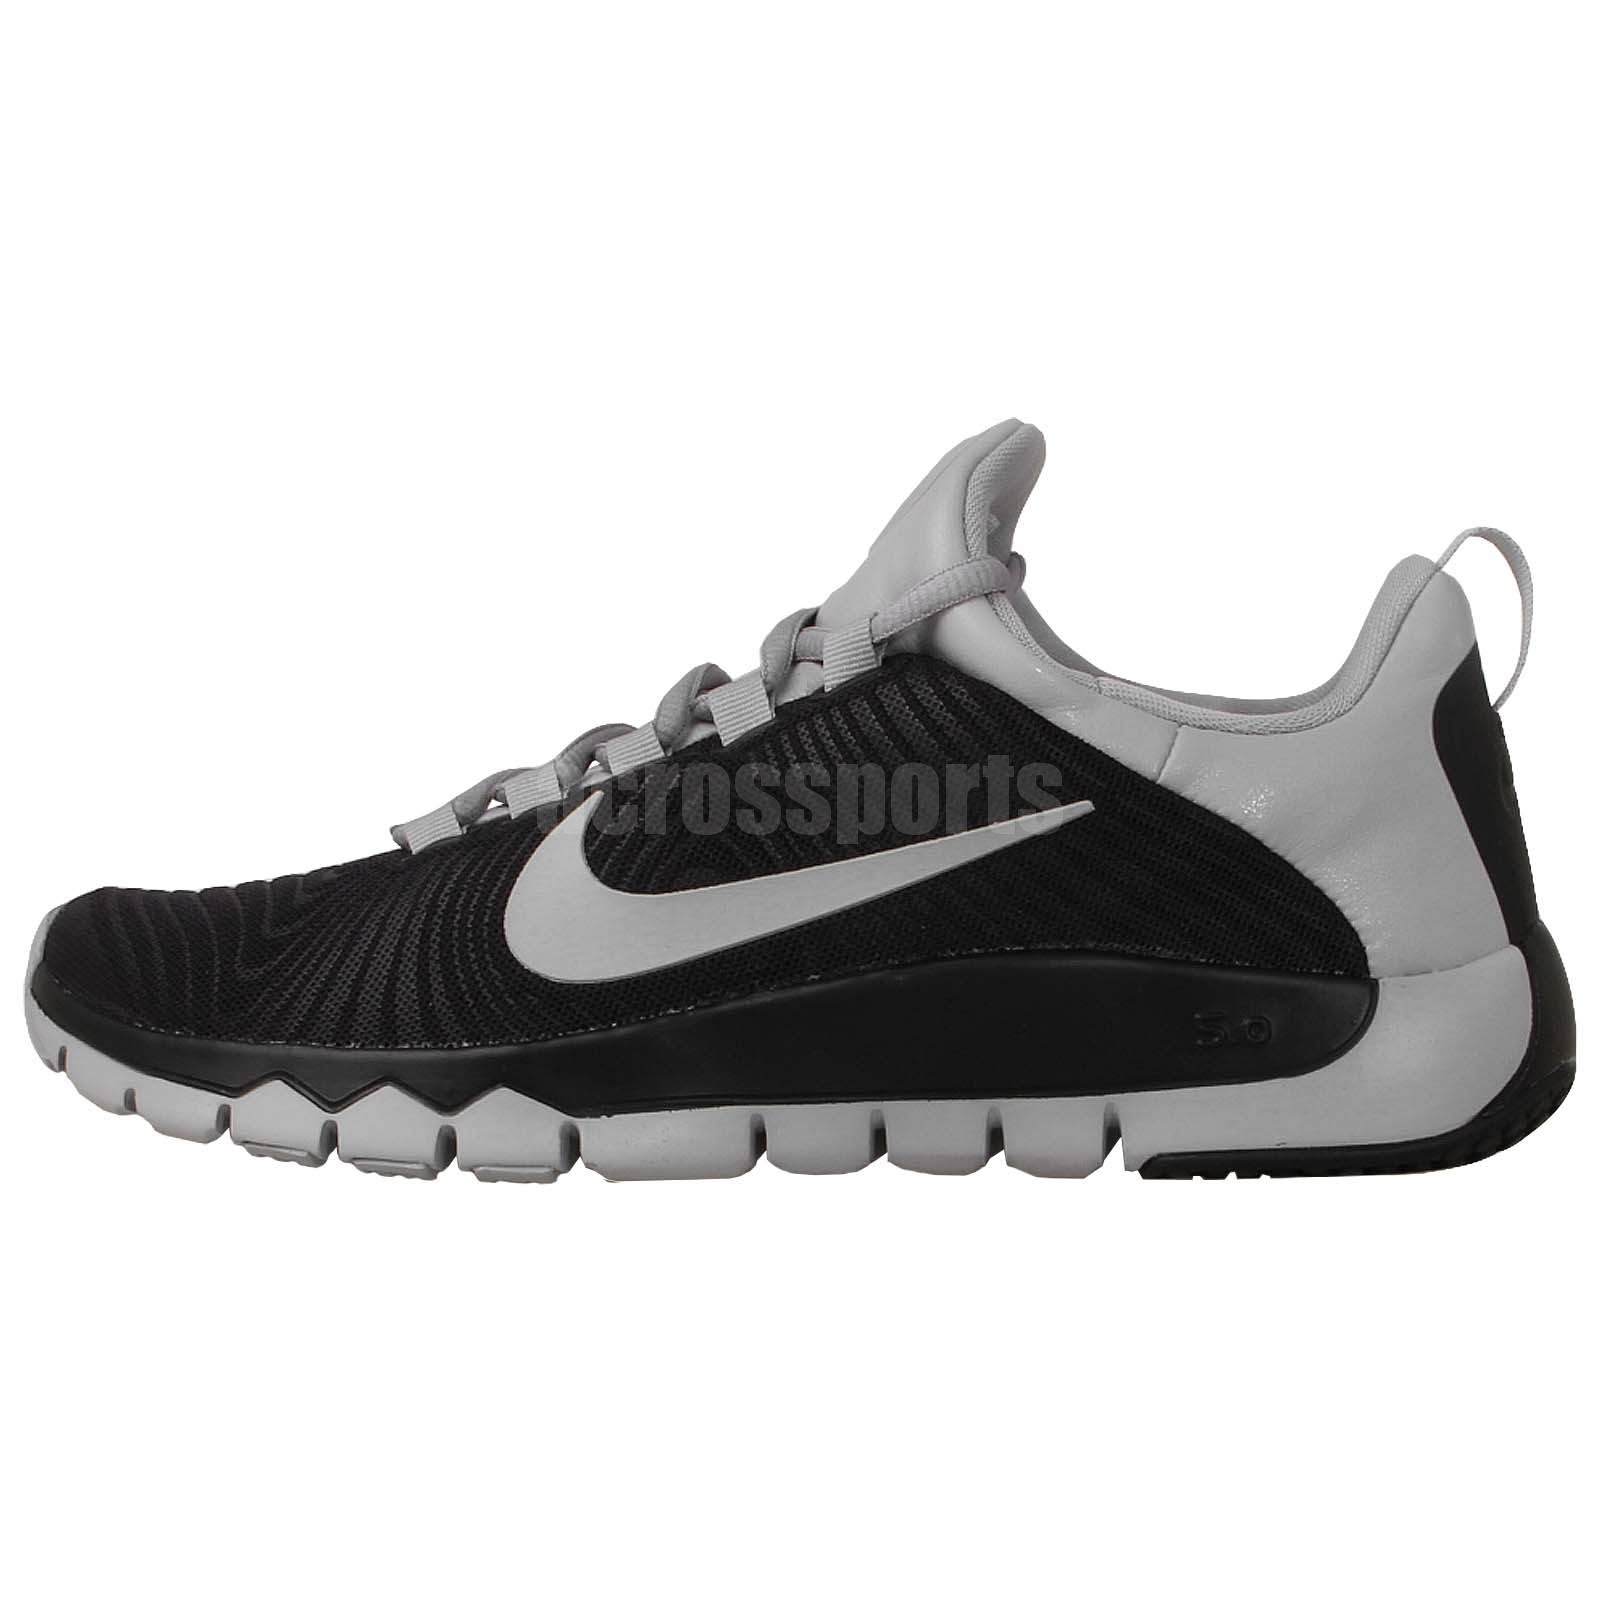 nike free trainer 5 0 v5 run black grey barefoot 2014 mens. Black Bedroom Furniture Sets. Home Design Ideas